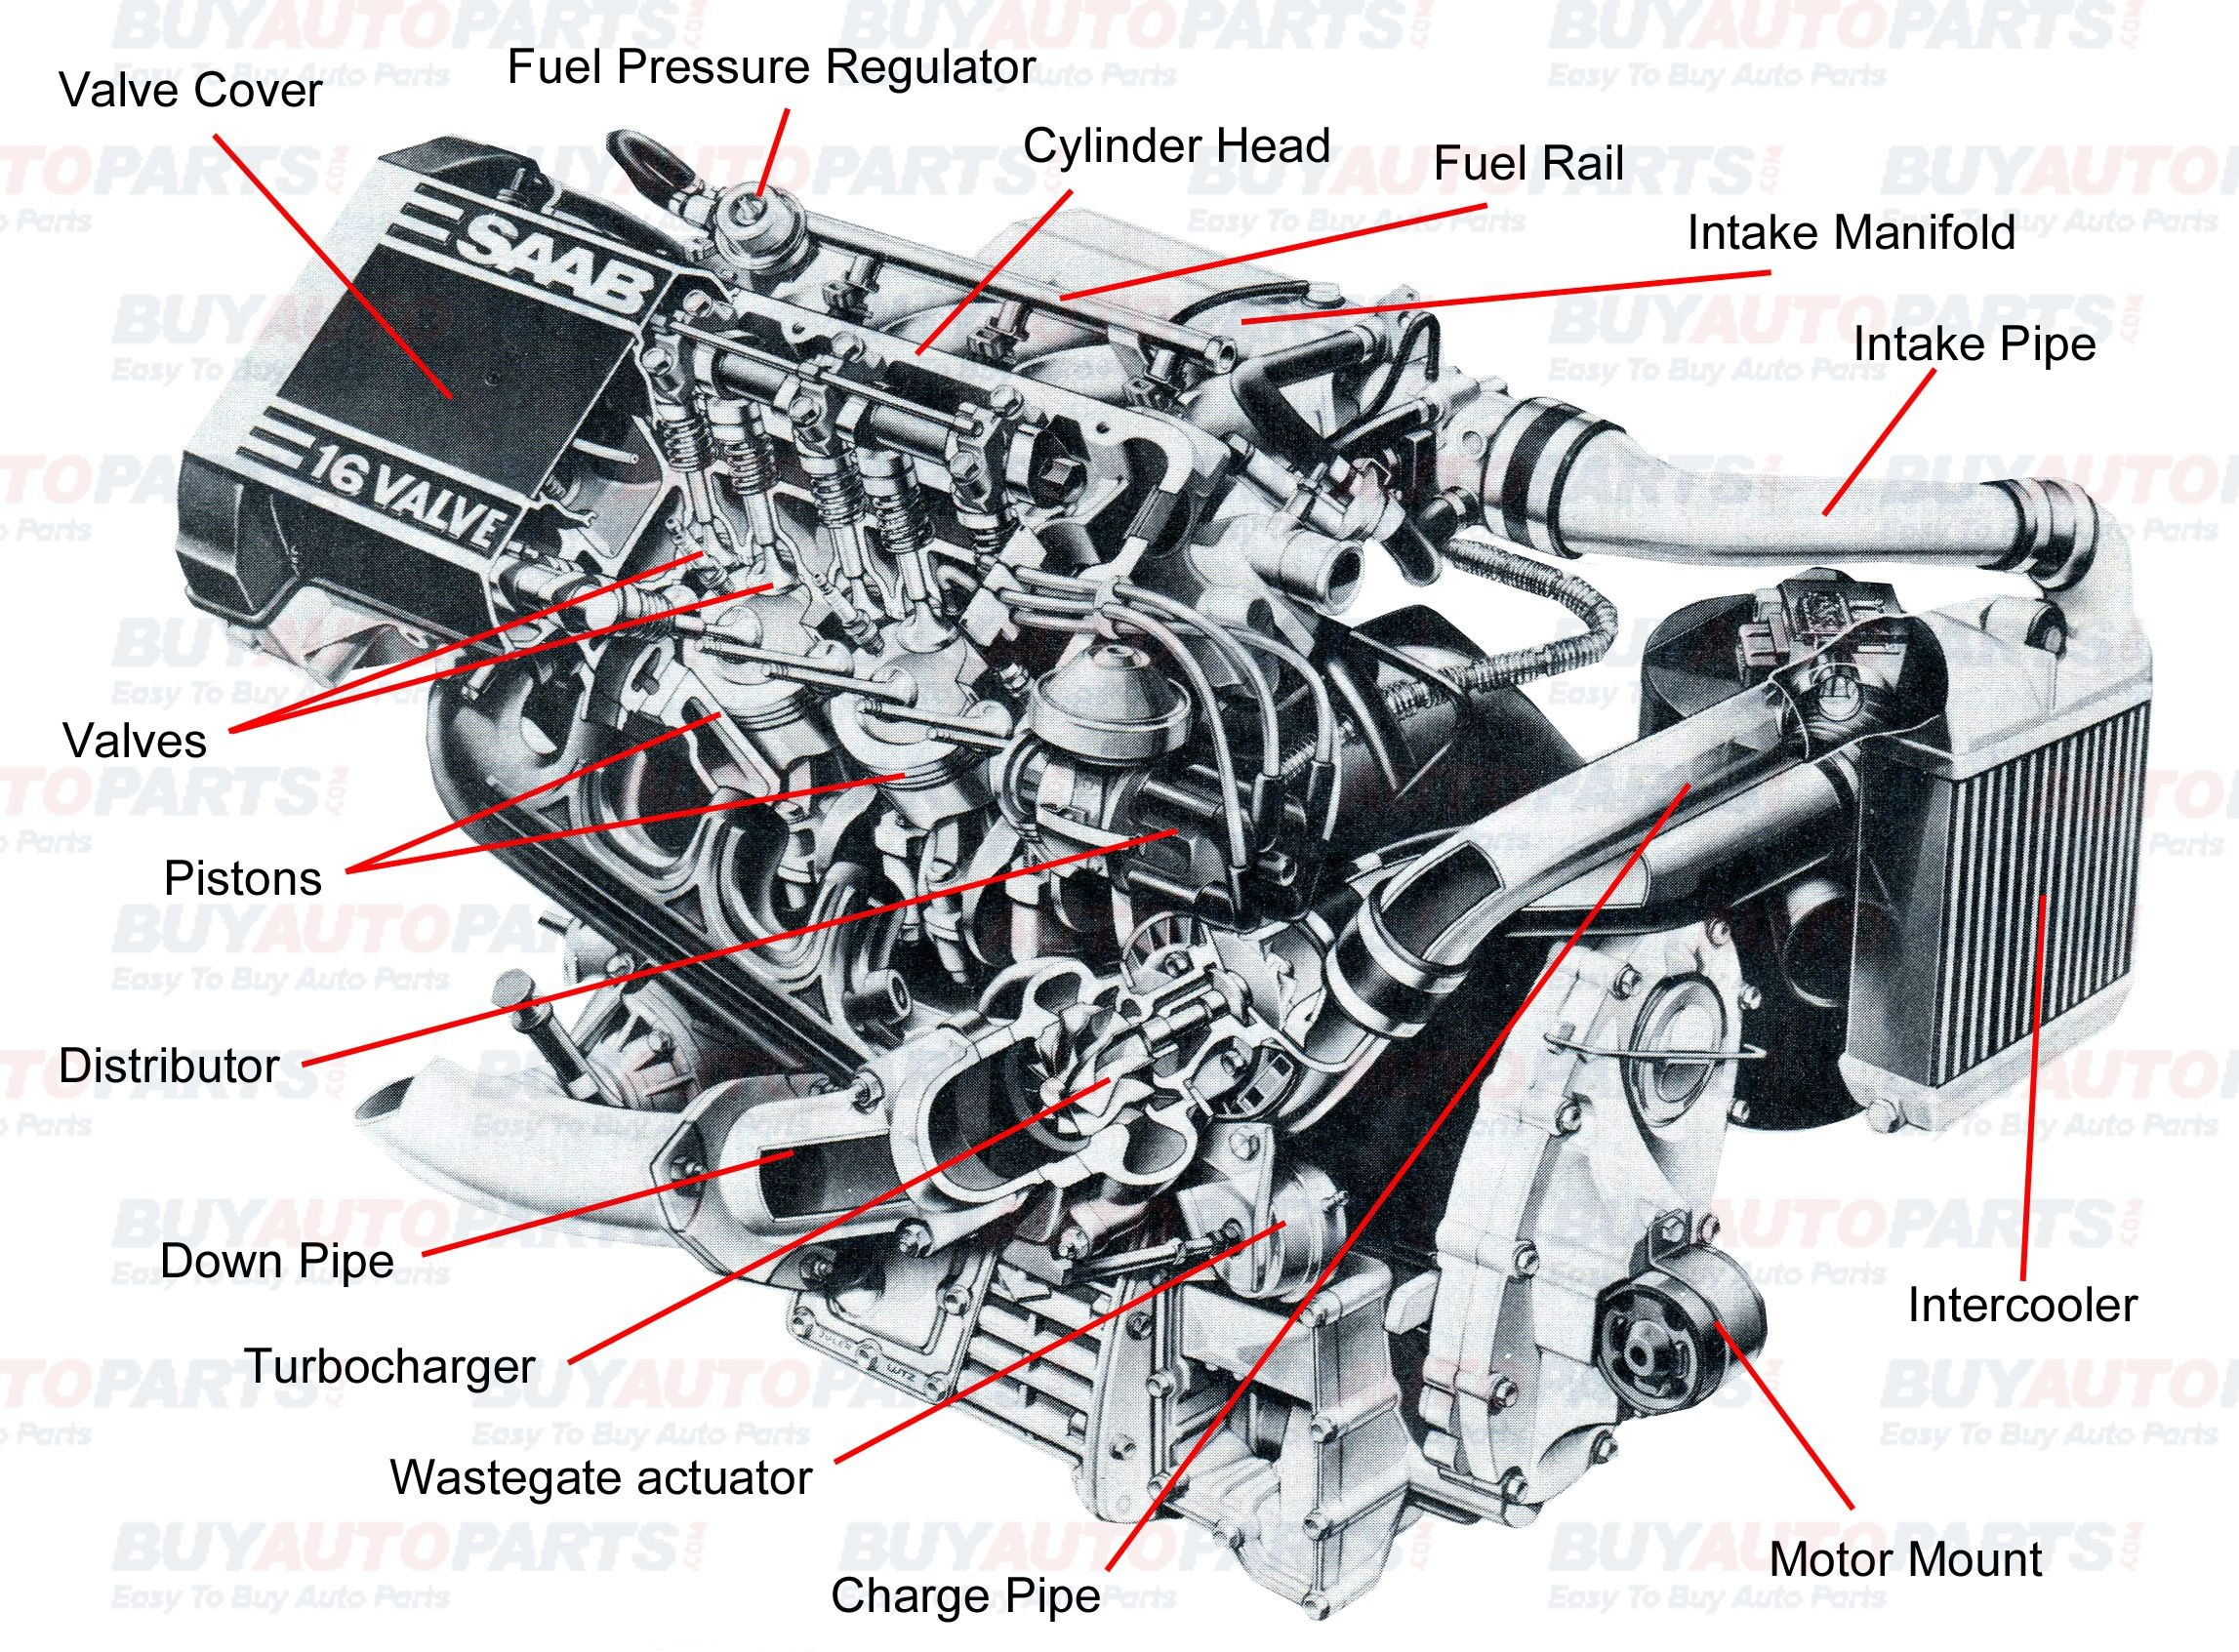 Car Part Diagram All Internal Bustion Engines Have the Same Basic Ponents the